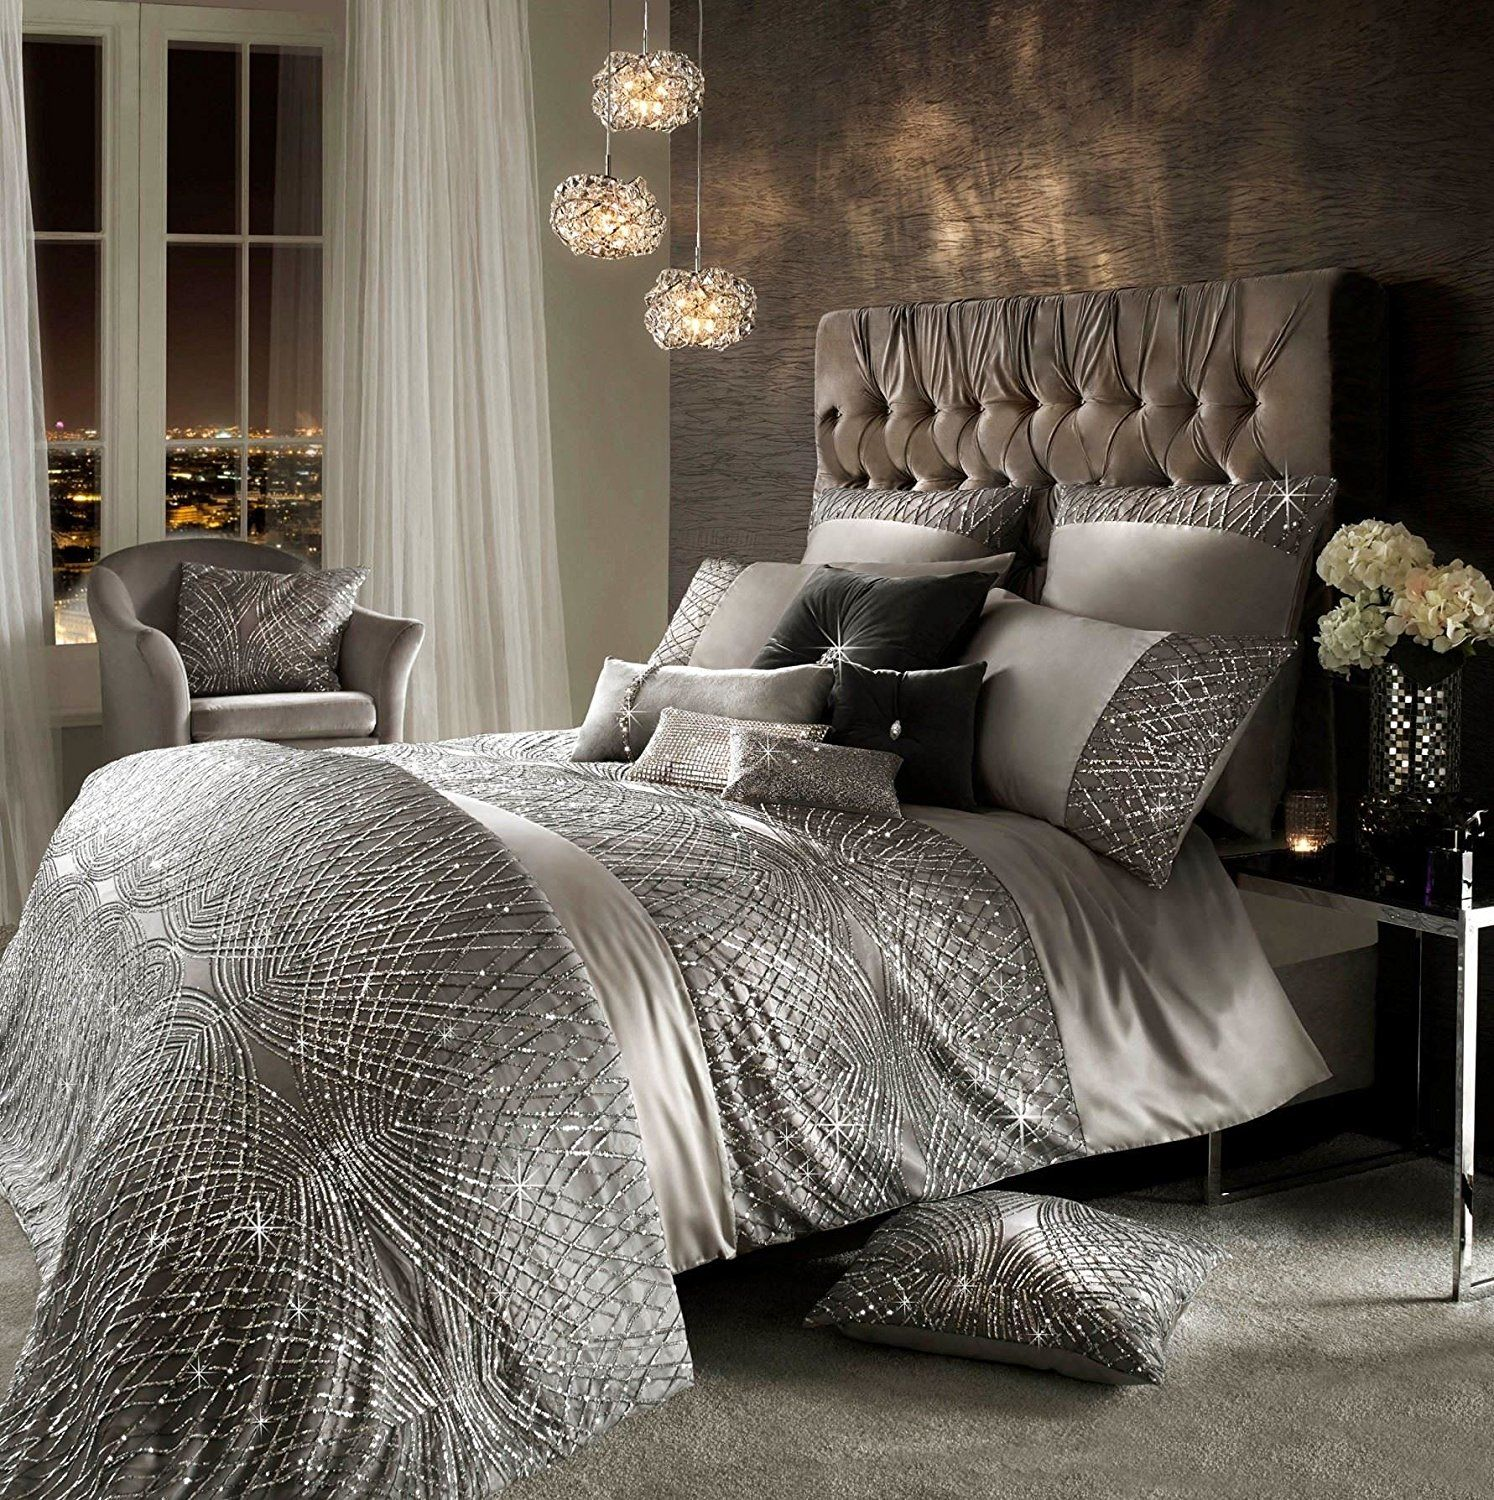 Boxing Day Bedding Sets Sale Bed Linens Luxury Silver Bedroom